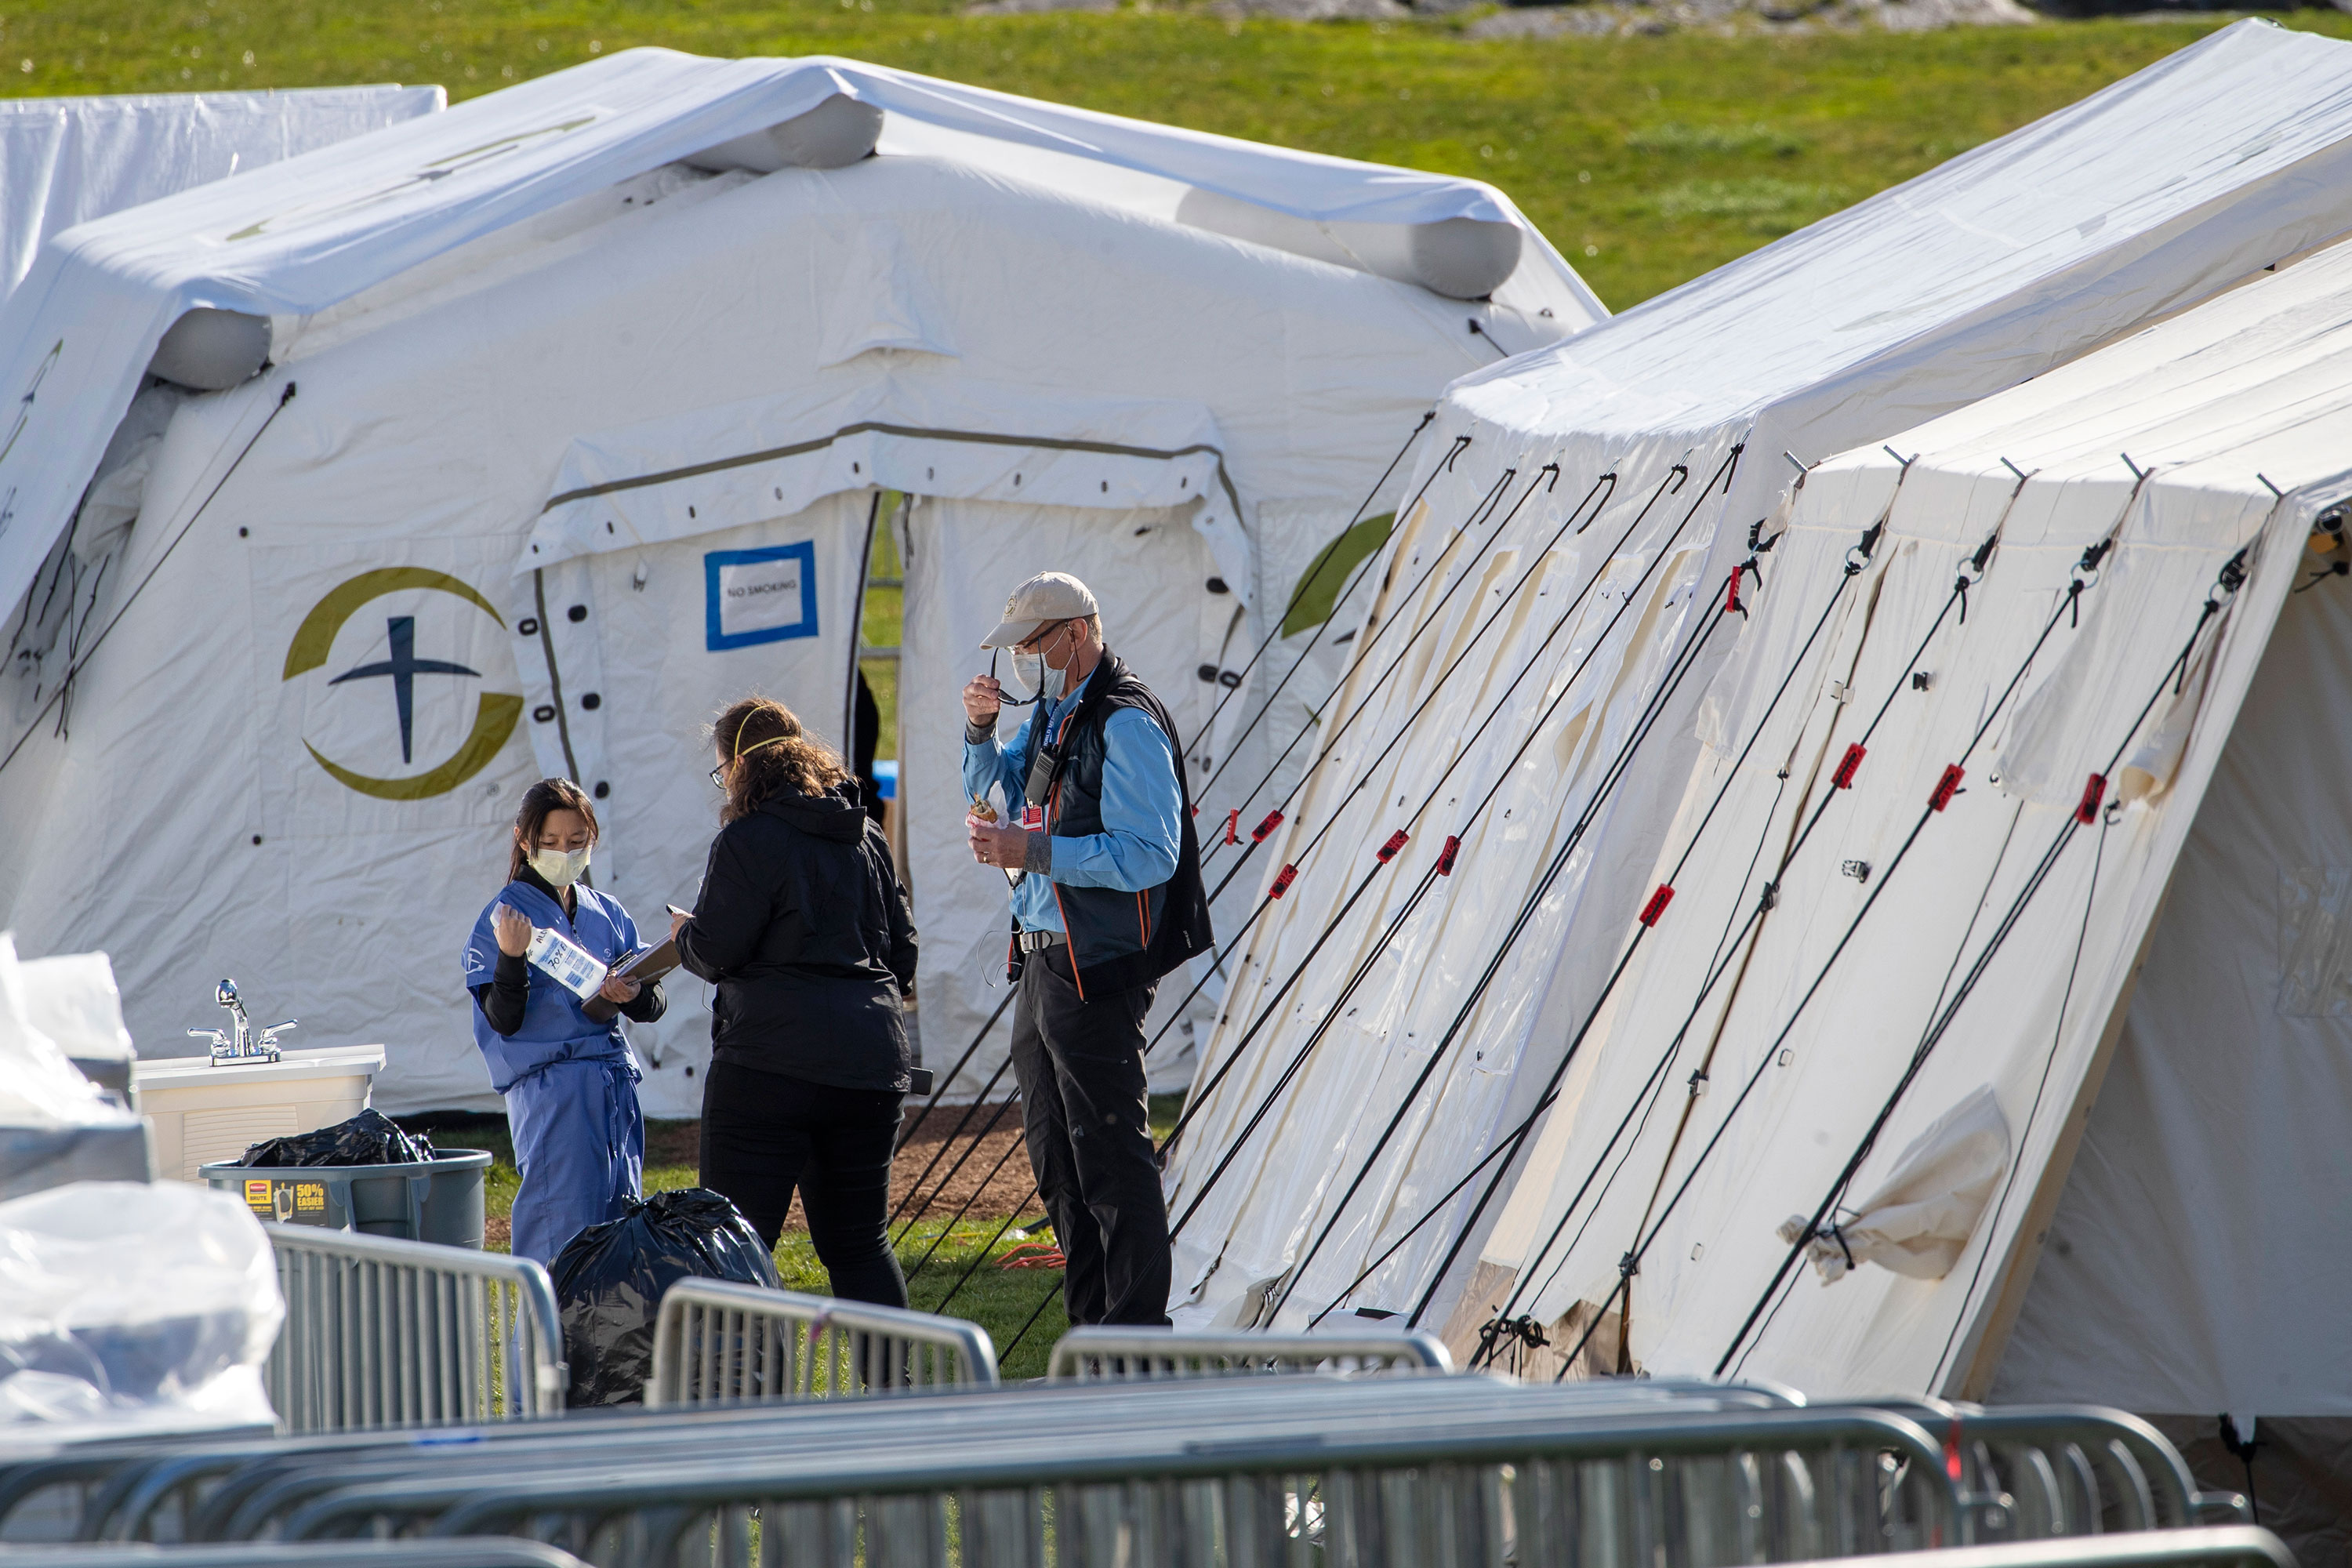 Medical personnel work at the Samaritan's Purse field hospital in New York's Central Park, on April 1.